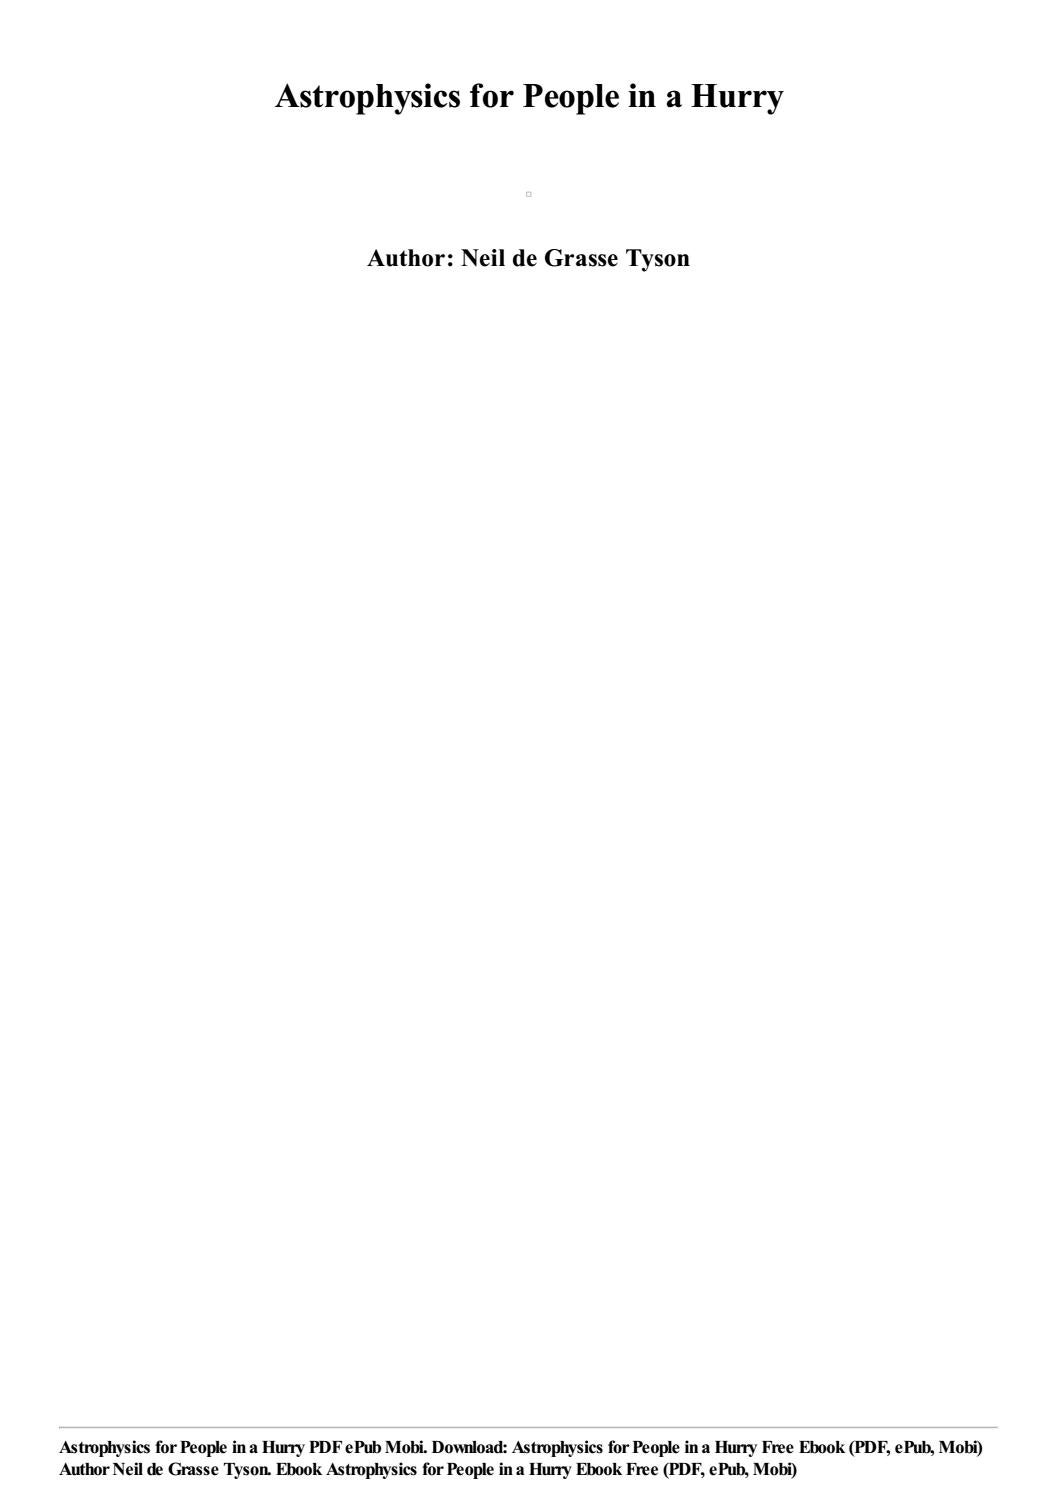 astrophysics for people in a hurry epub